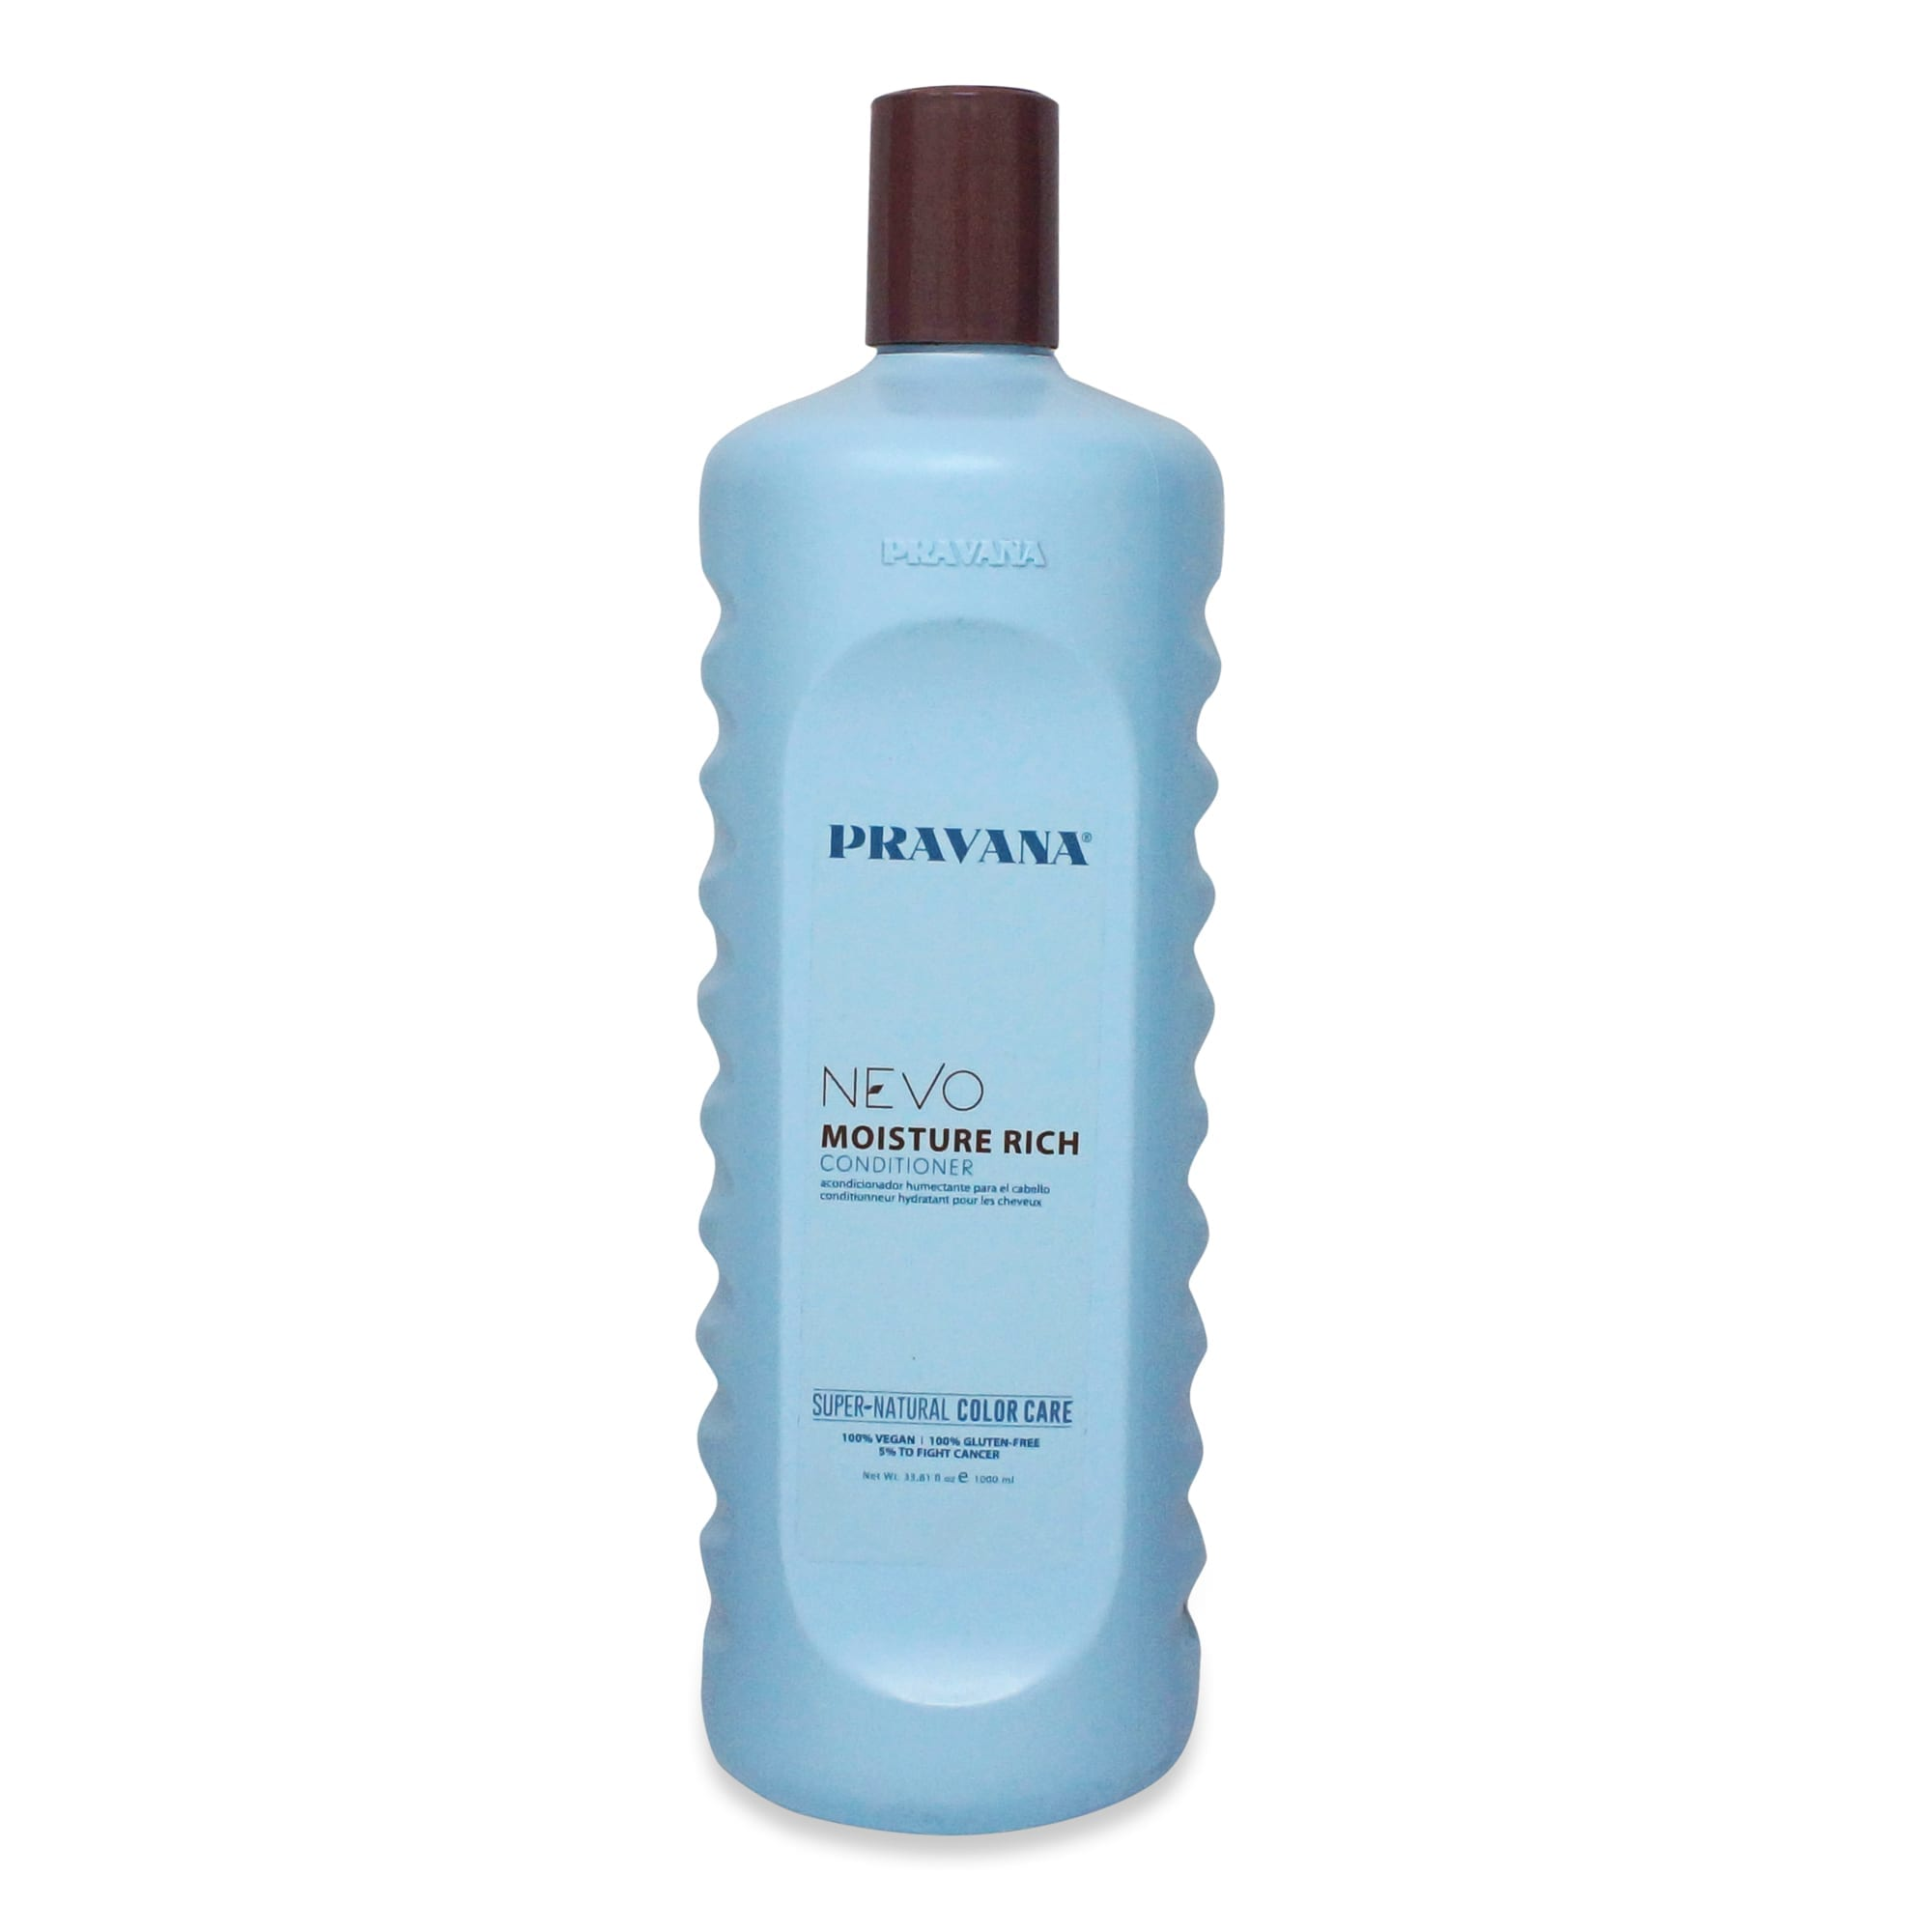 PRAVANA NEVO Moisture Rich Conditioner 1 33.8 Oz